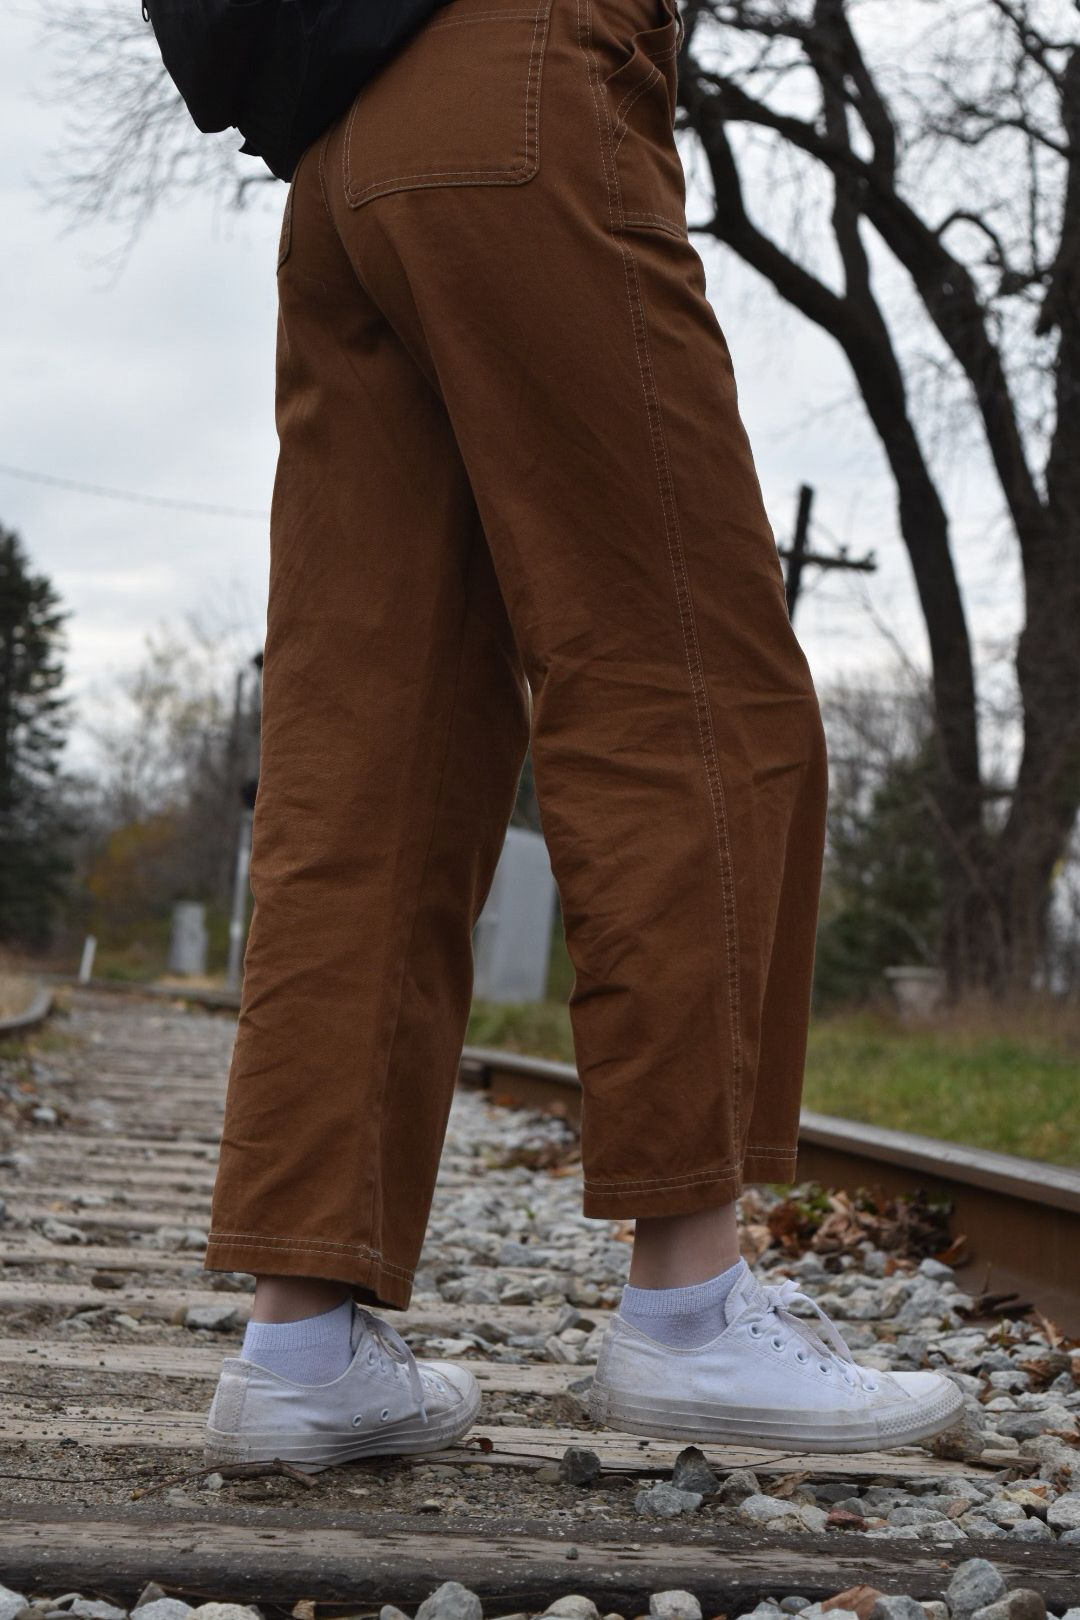 62ba48f67d7 cute brown cargo pants aesthetic outfit ideas | no $$$ in 2019 ...